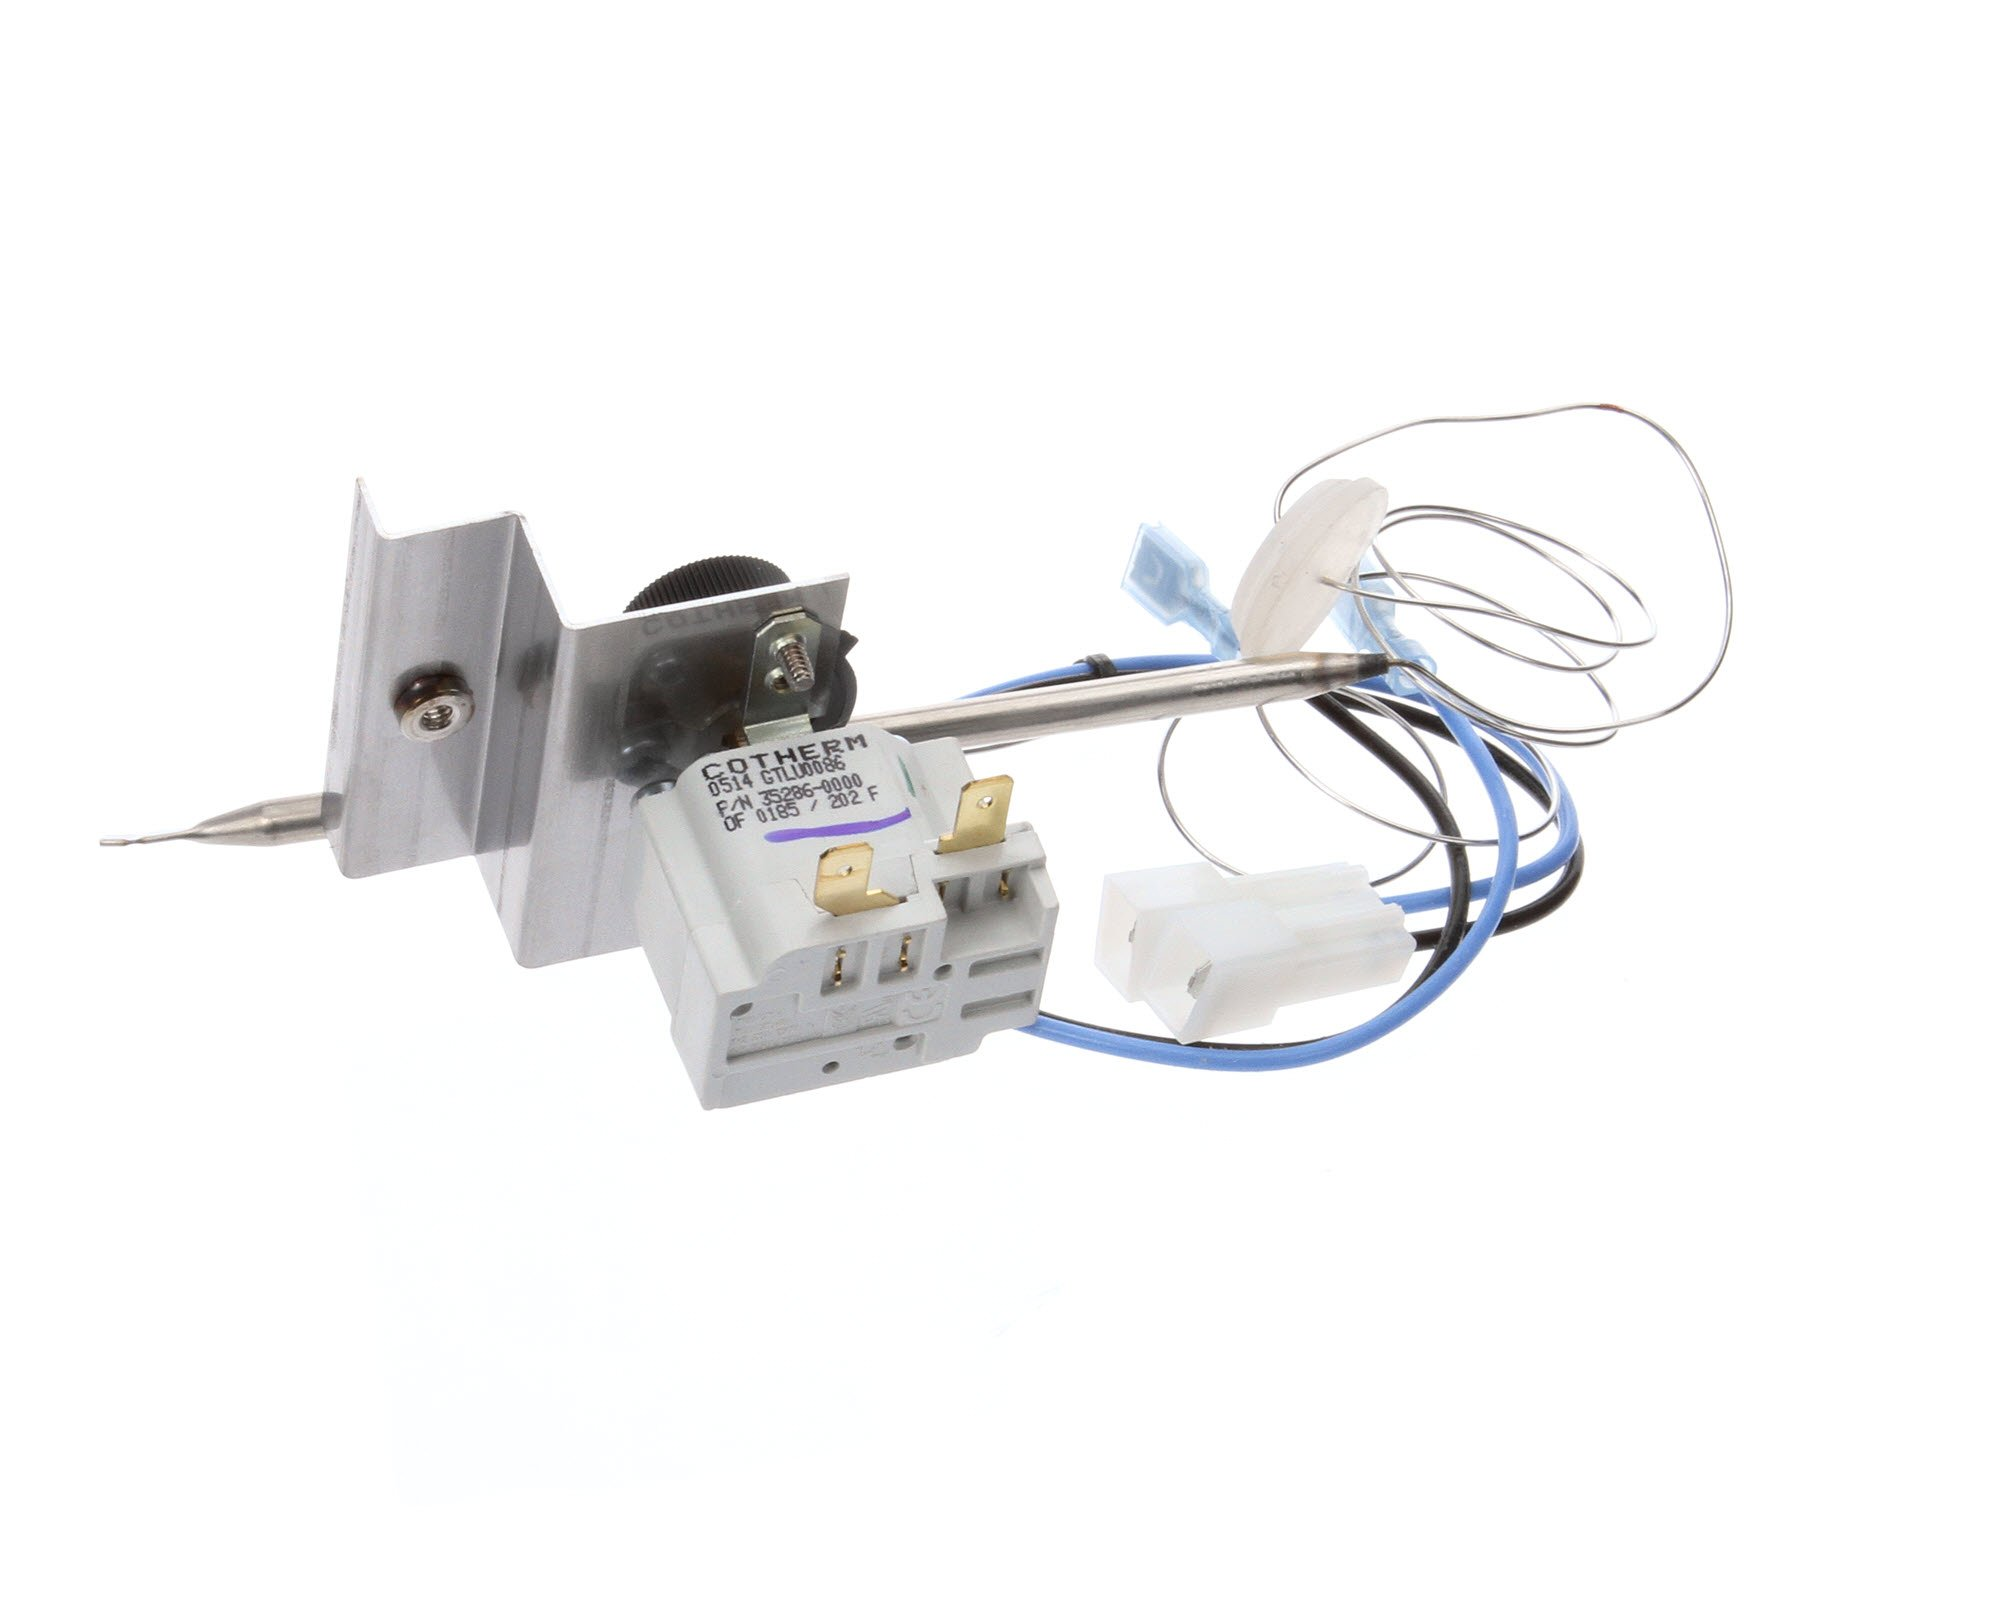 Bunn 28385.1001 120-volt Thermostat Kit by Bunn